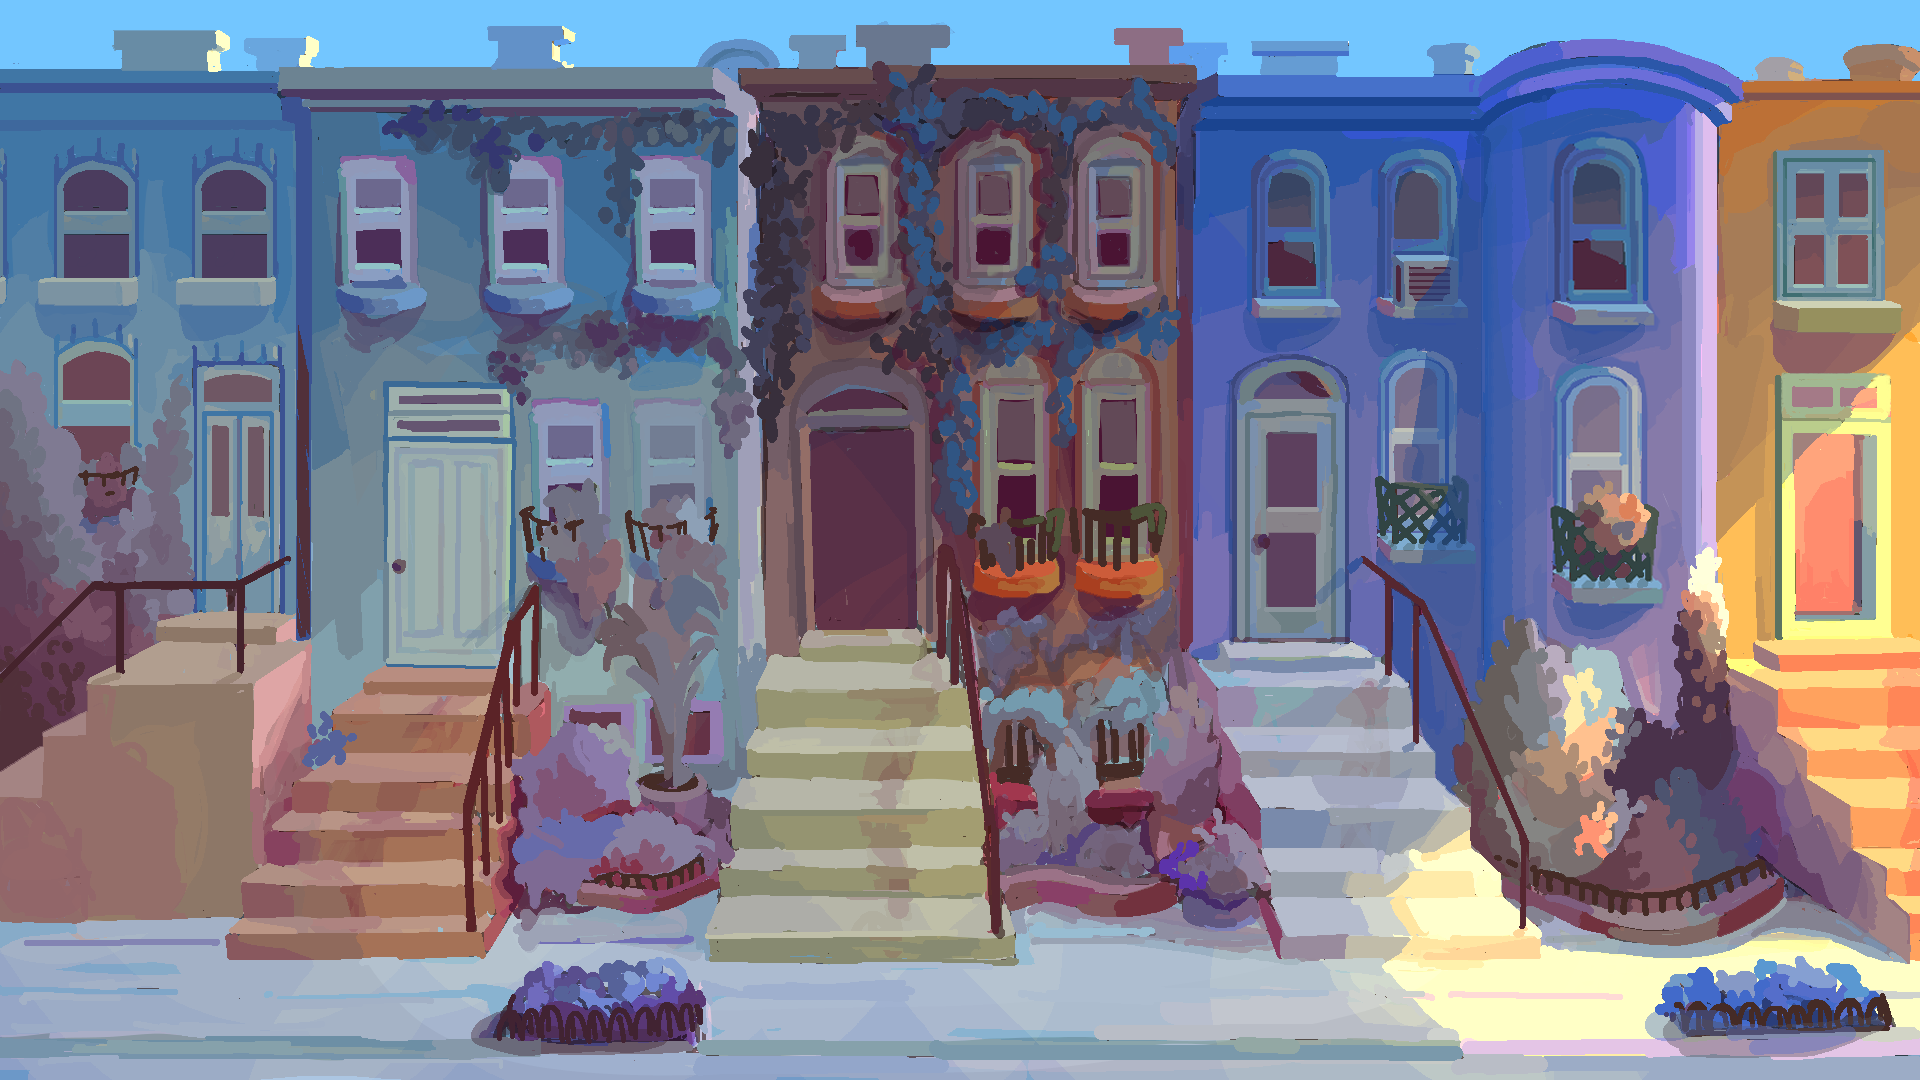 Digital painting of neighborhood. A series of five differently-colored row houses in a row with plants and a sidewalk at the base.